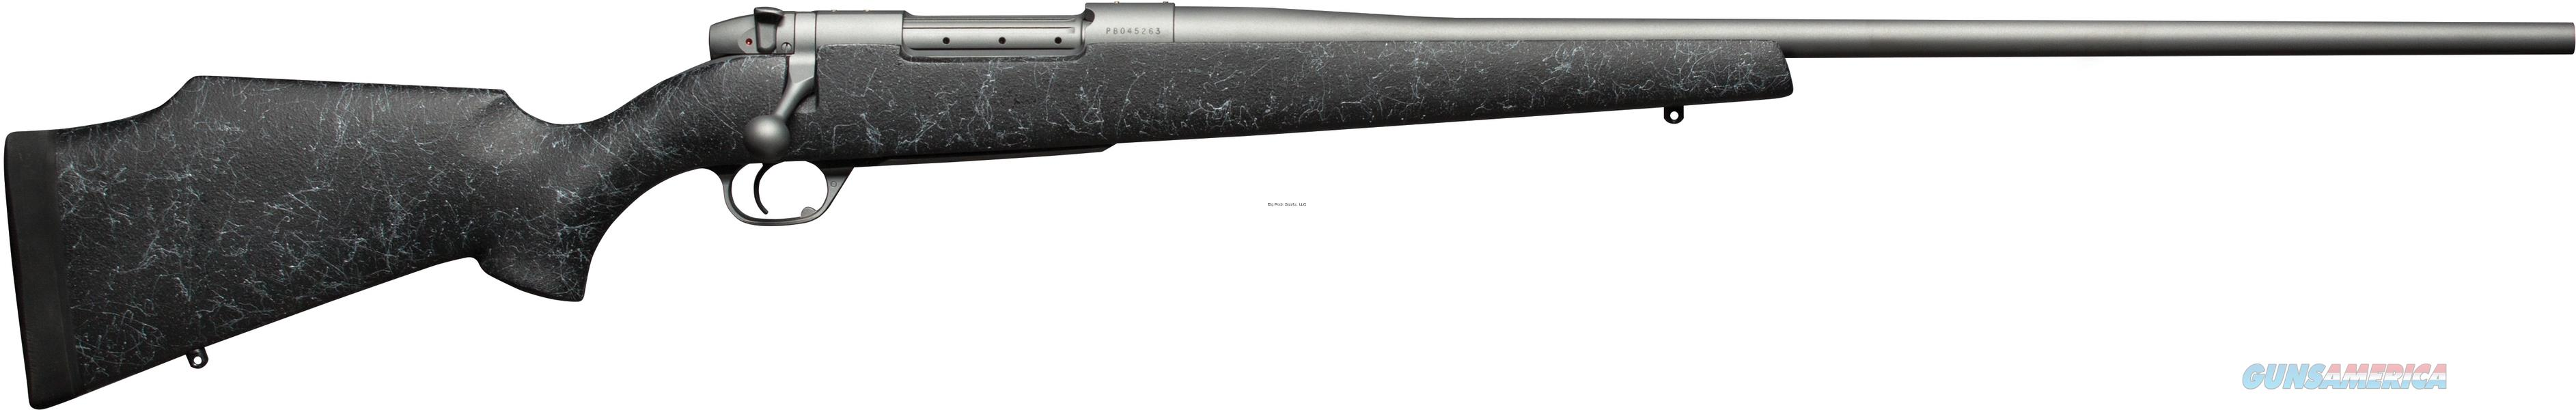 "Weatherby Mark V Weathermark Bolt Action Rifle 270 Win Mag 24"" MWMS270NR4O  Guns > Rifles > W Misc Rifles"